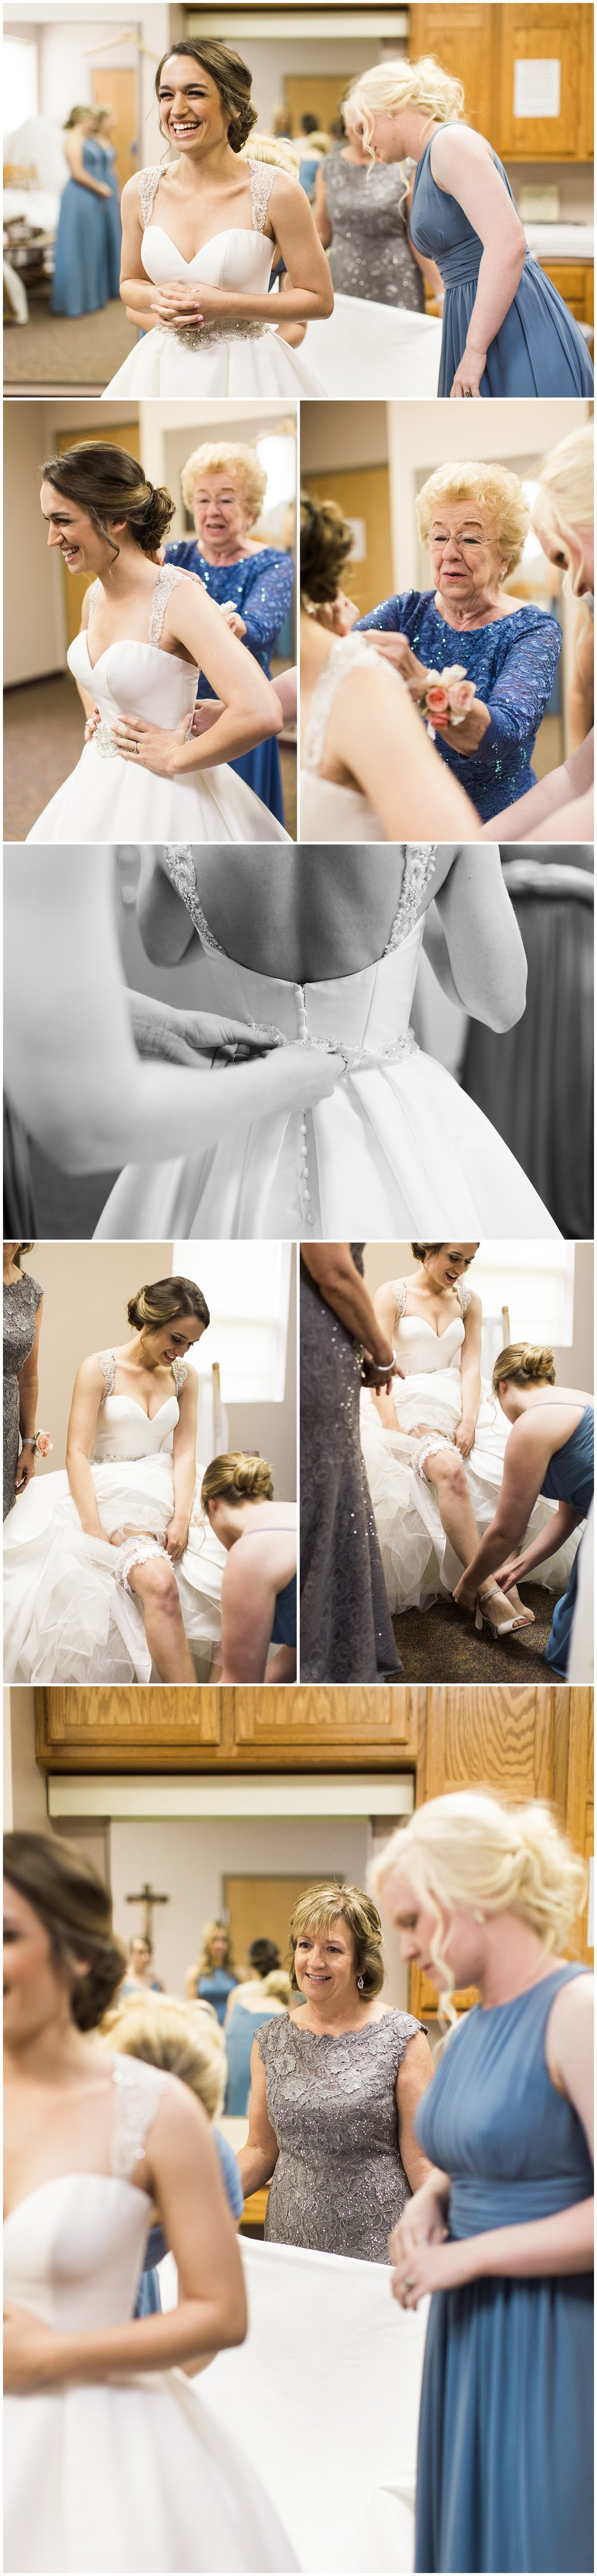 Brownstone_Reserve_Wedding_Kristina_Ross_Photography_0009.jpg